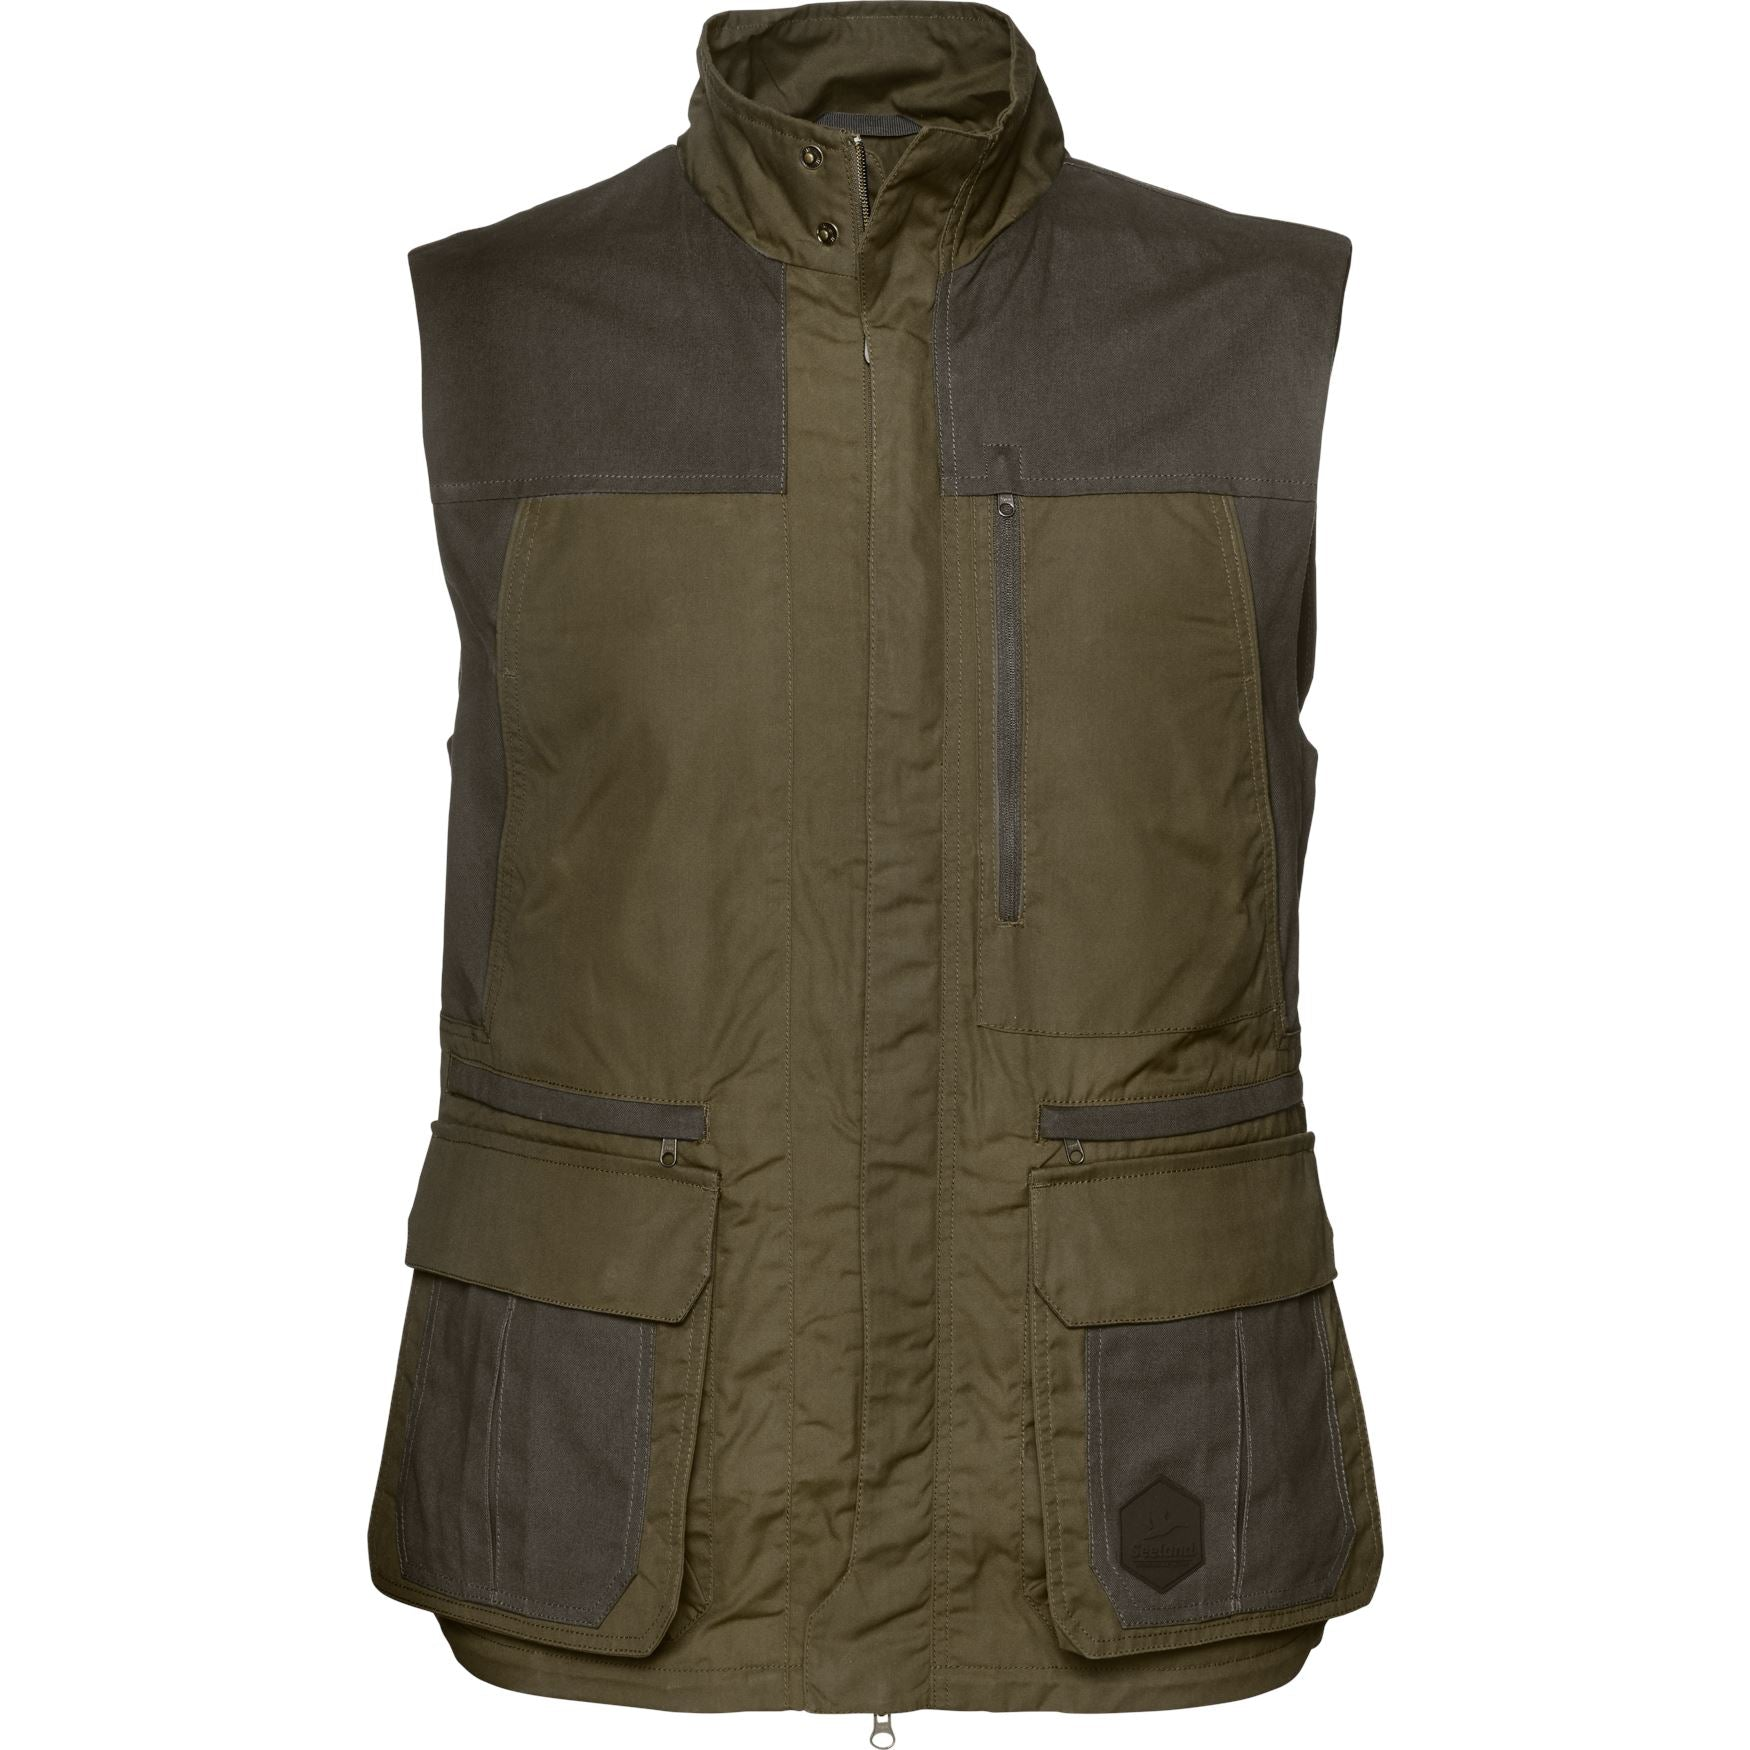 Seeland - Key-Point vest thumbnail